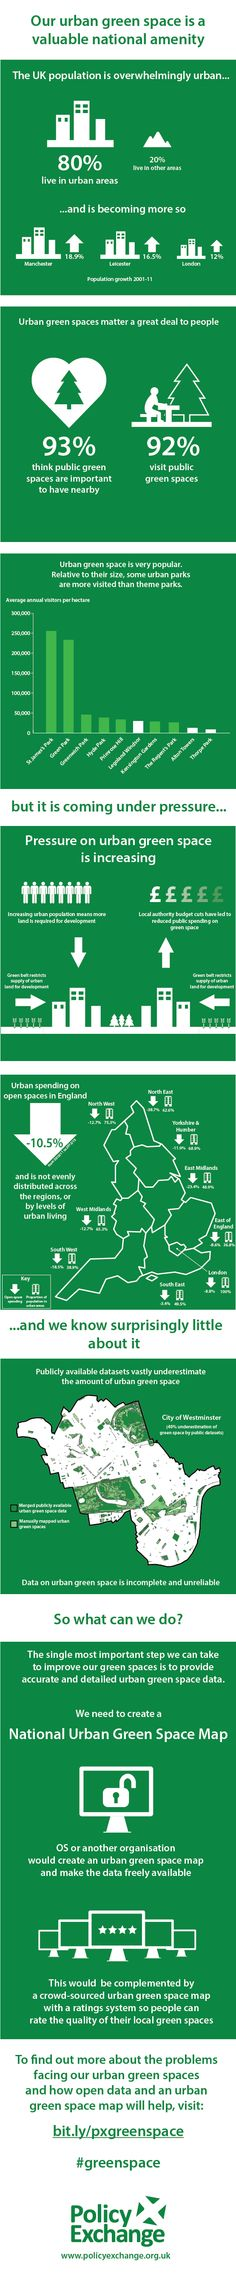 Our Urban Green Space A Caluable National Amenity  #Infographic #UK